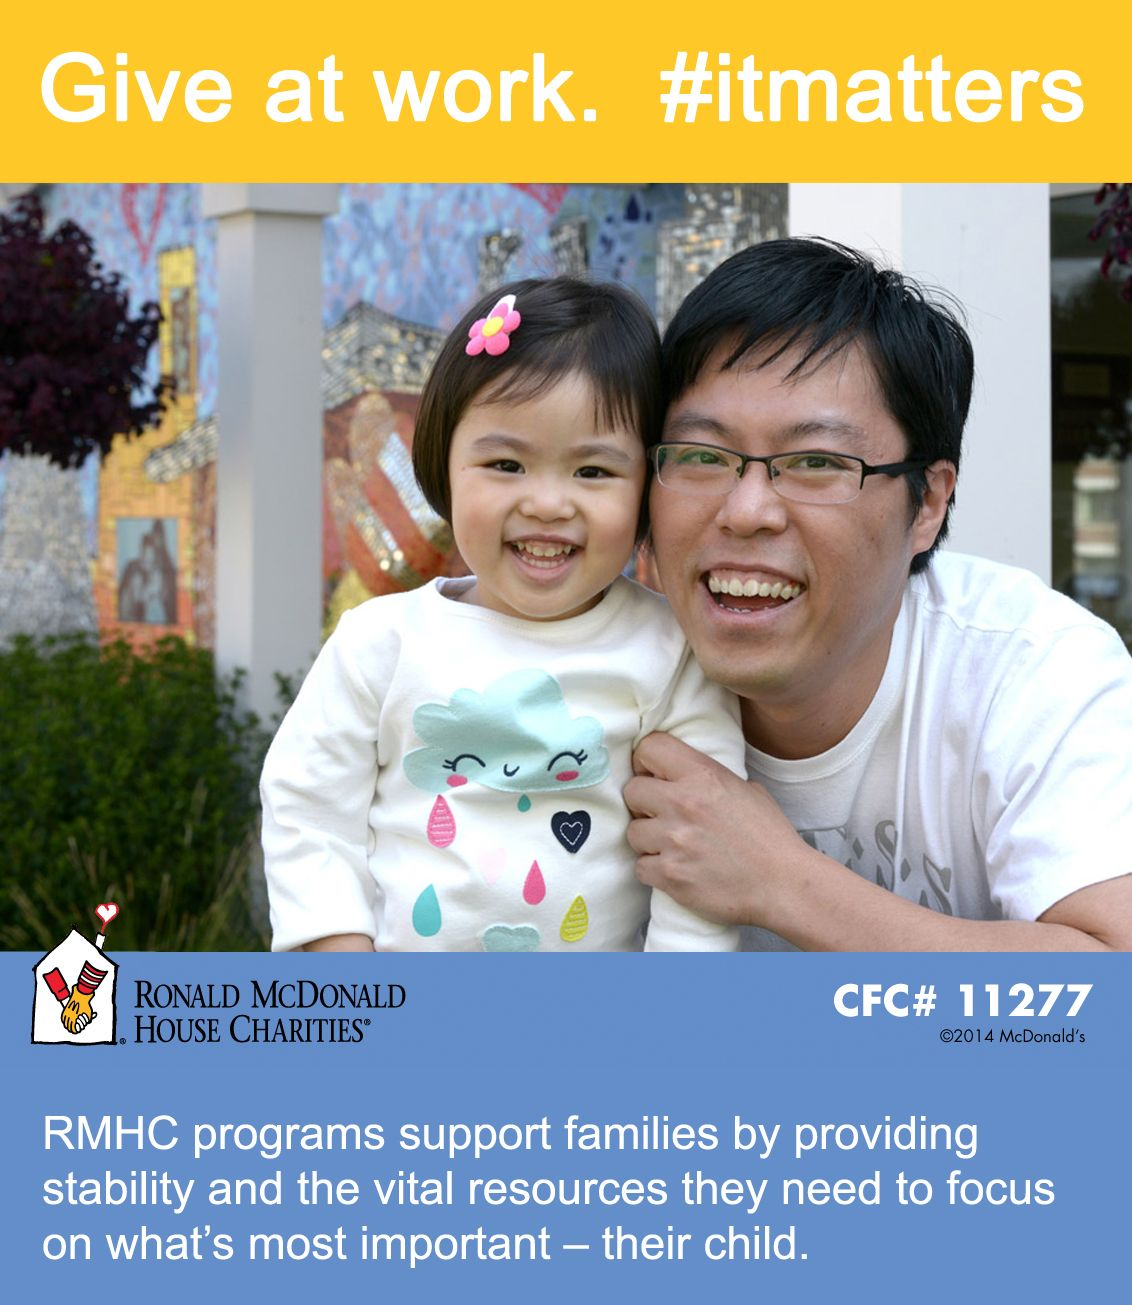 Provide families with stability & vital resources they need. Give at work to RMHC http://bit.ly/1uA1qih #CFC 11277 #itmatters